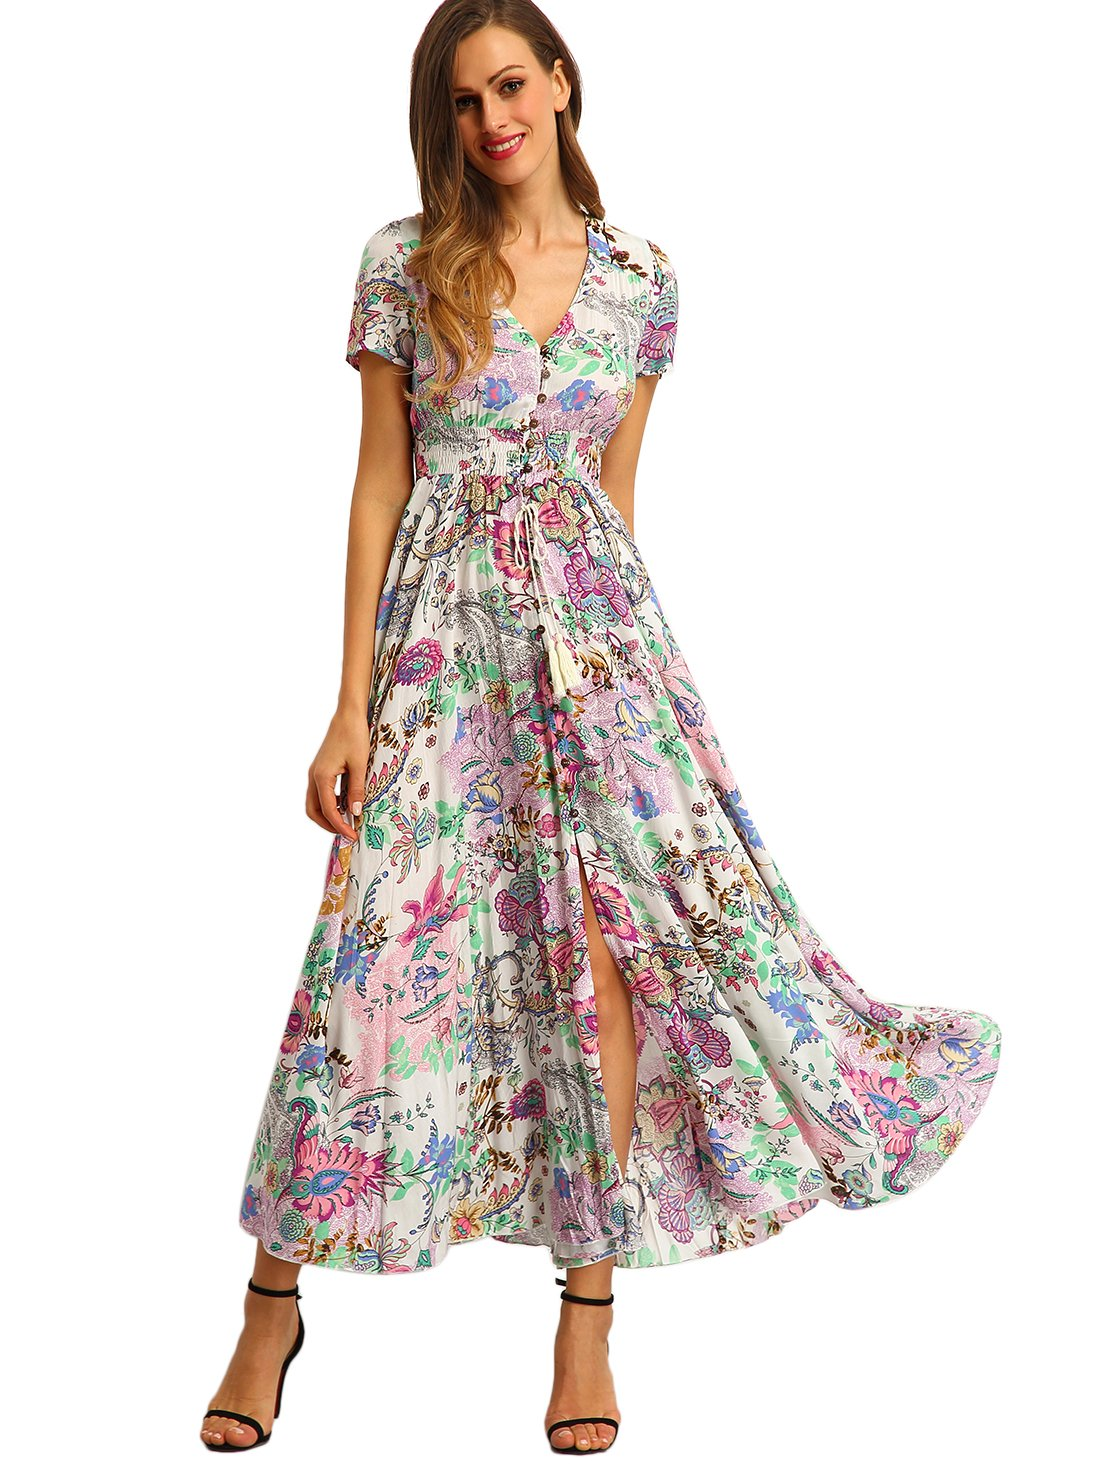 Milumia Women's Button Up Split Floral Print Flowy Party Maxi Dress Medium Pink